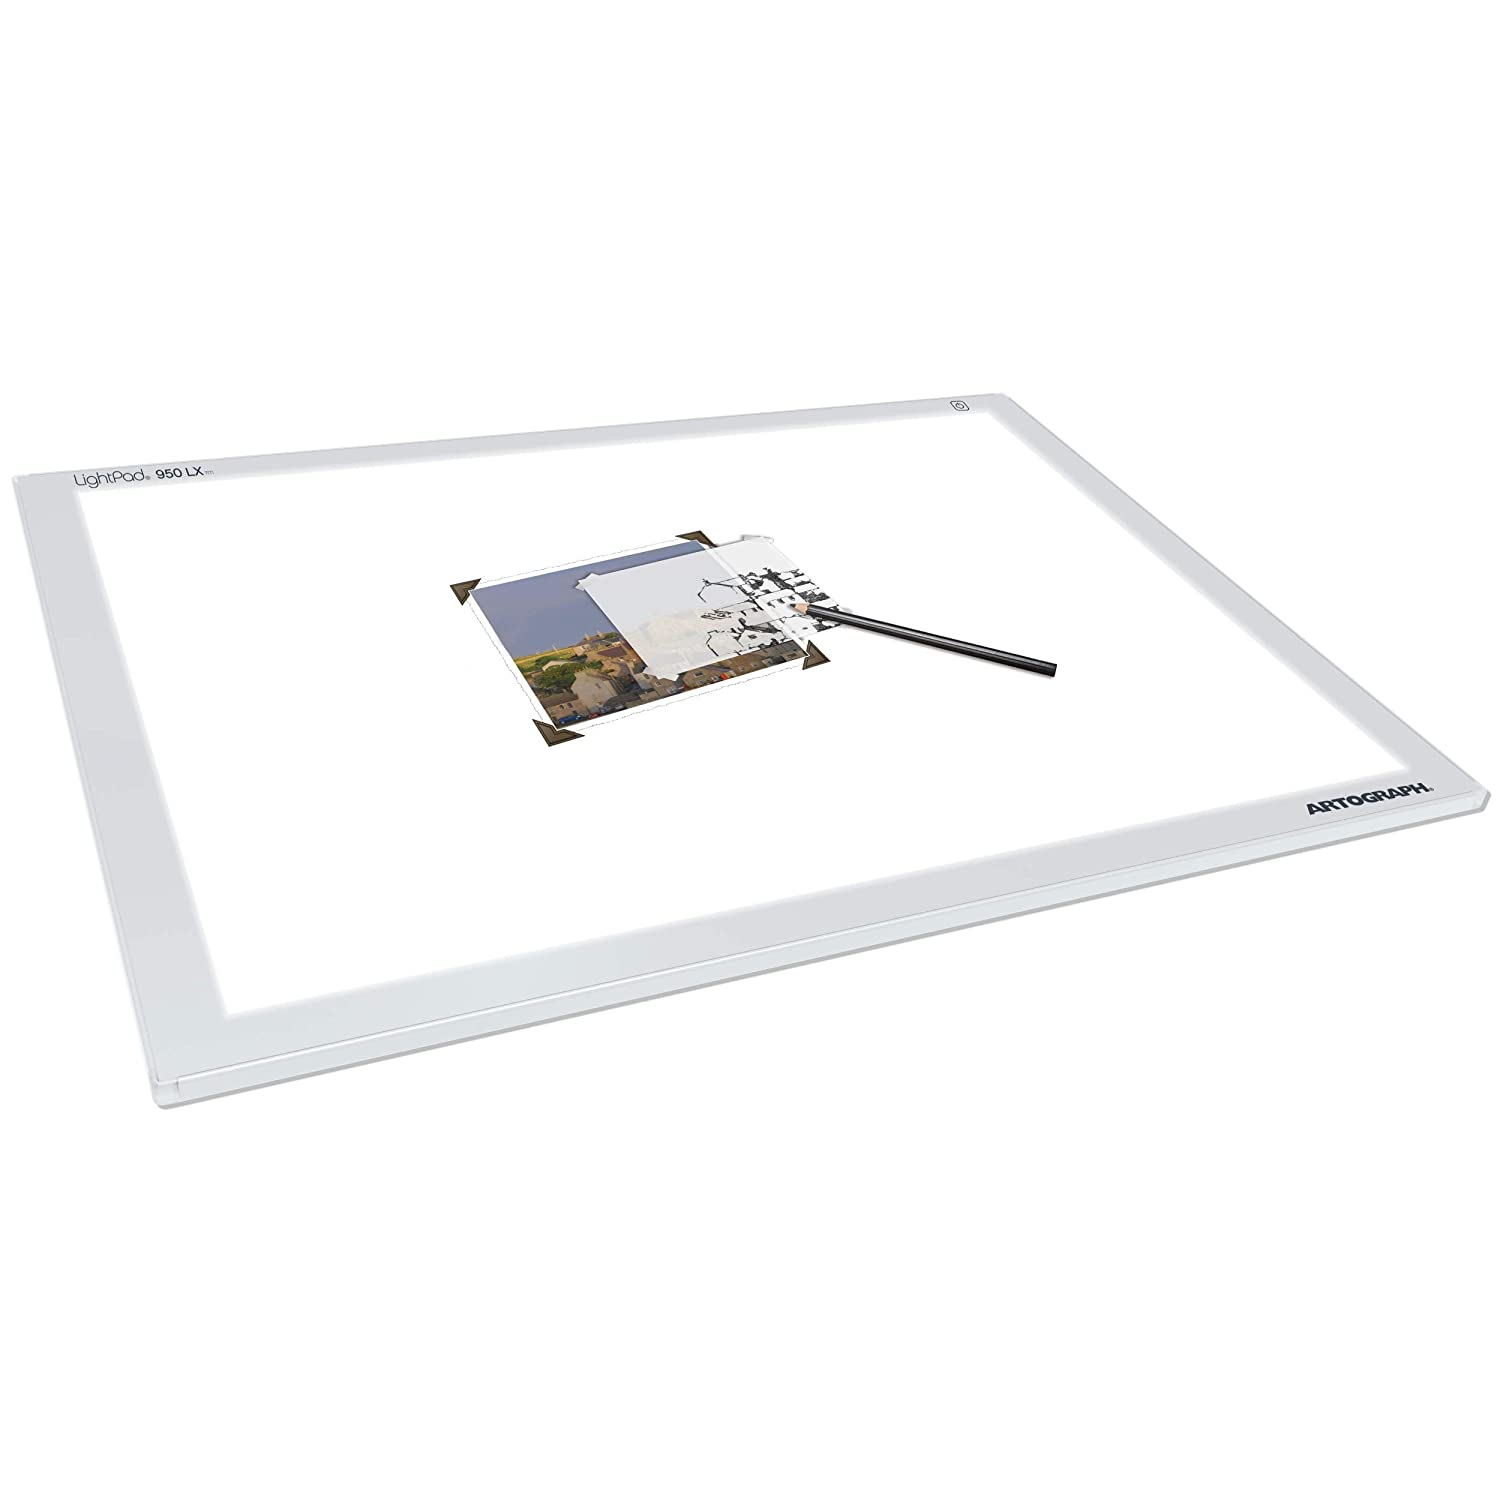 Artograph Lightpad A950 Led Lightbox 17x24 Inch Developing A Circuit That Will Use Many Leds Mixing Ordinary 5mm